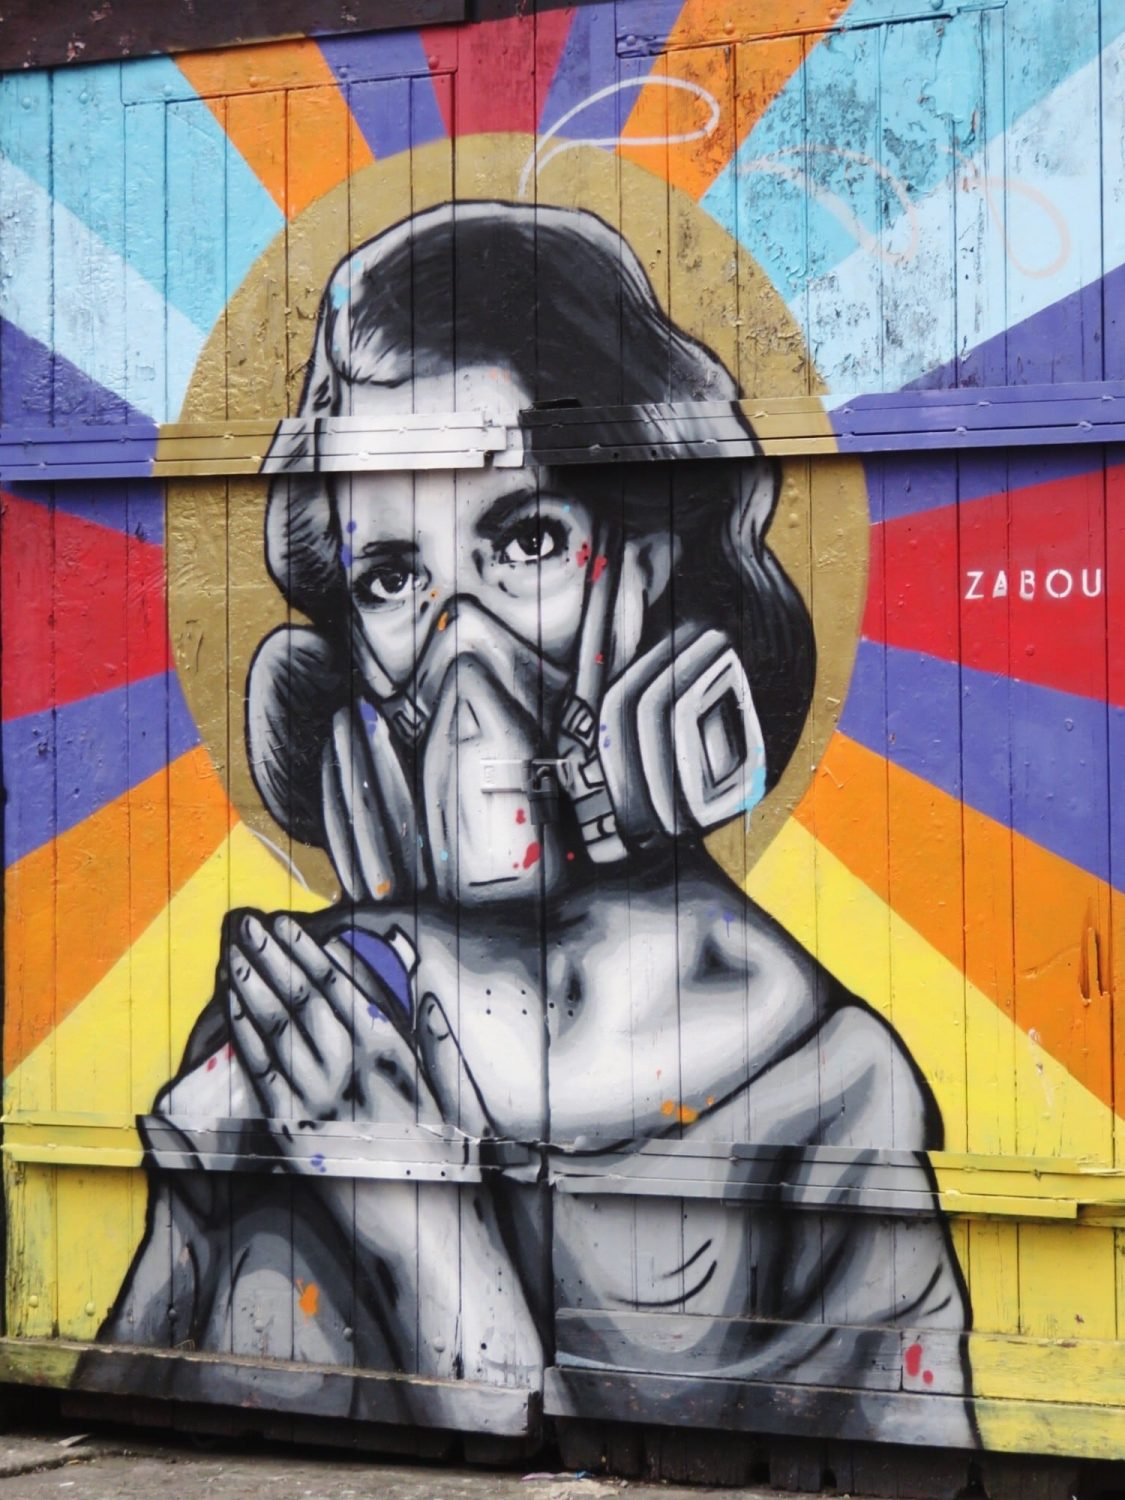 Zabou in Shoreditch